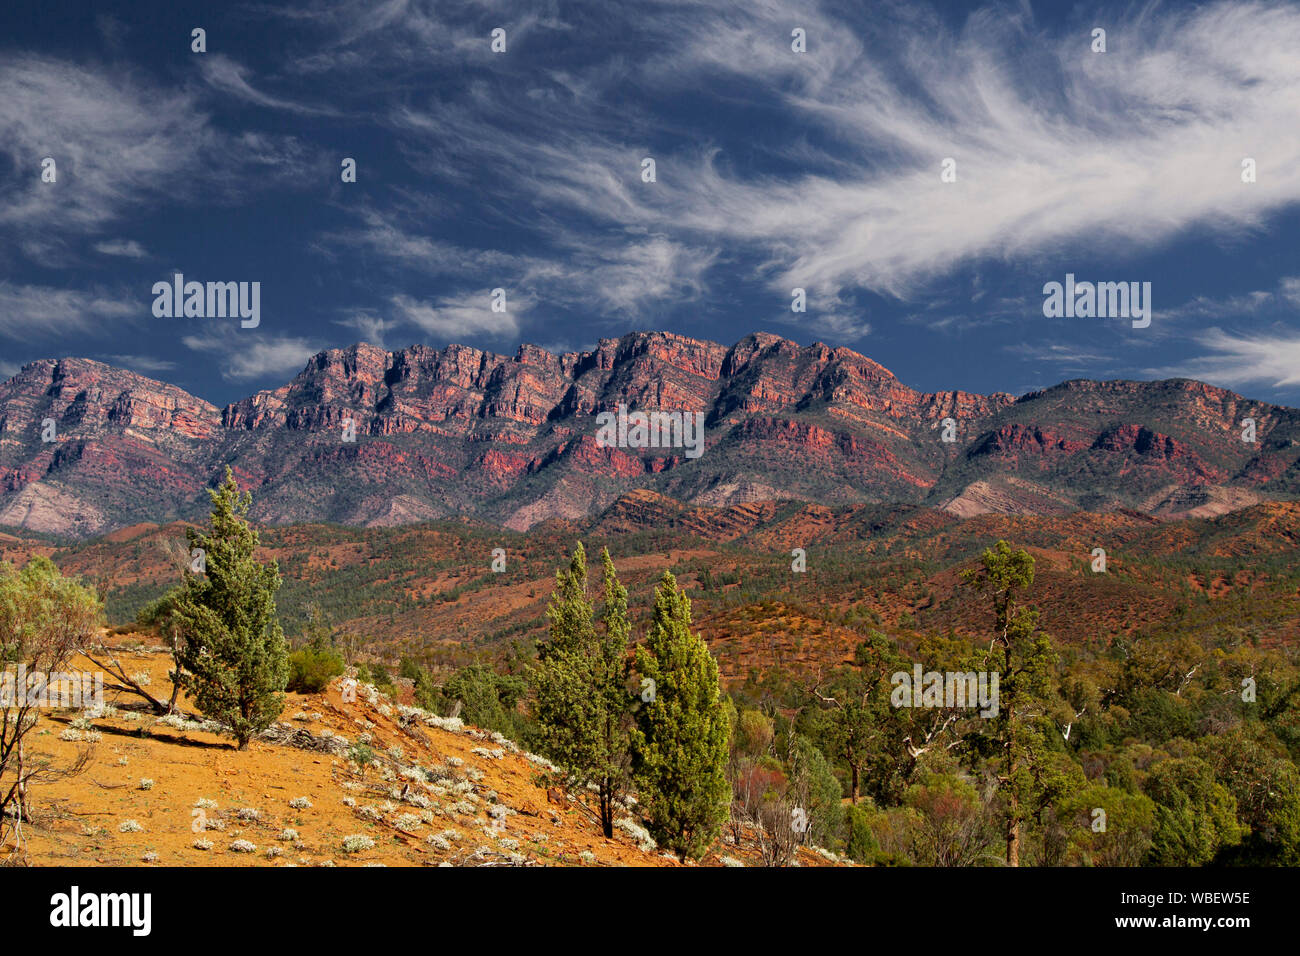 Stunning landscape in Flinders Ranges National Park with rugged red rocky ranges reaching up into blue sky streaked with clouds, South Australia Stock Photo